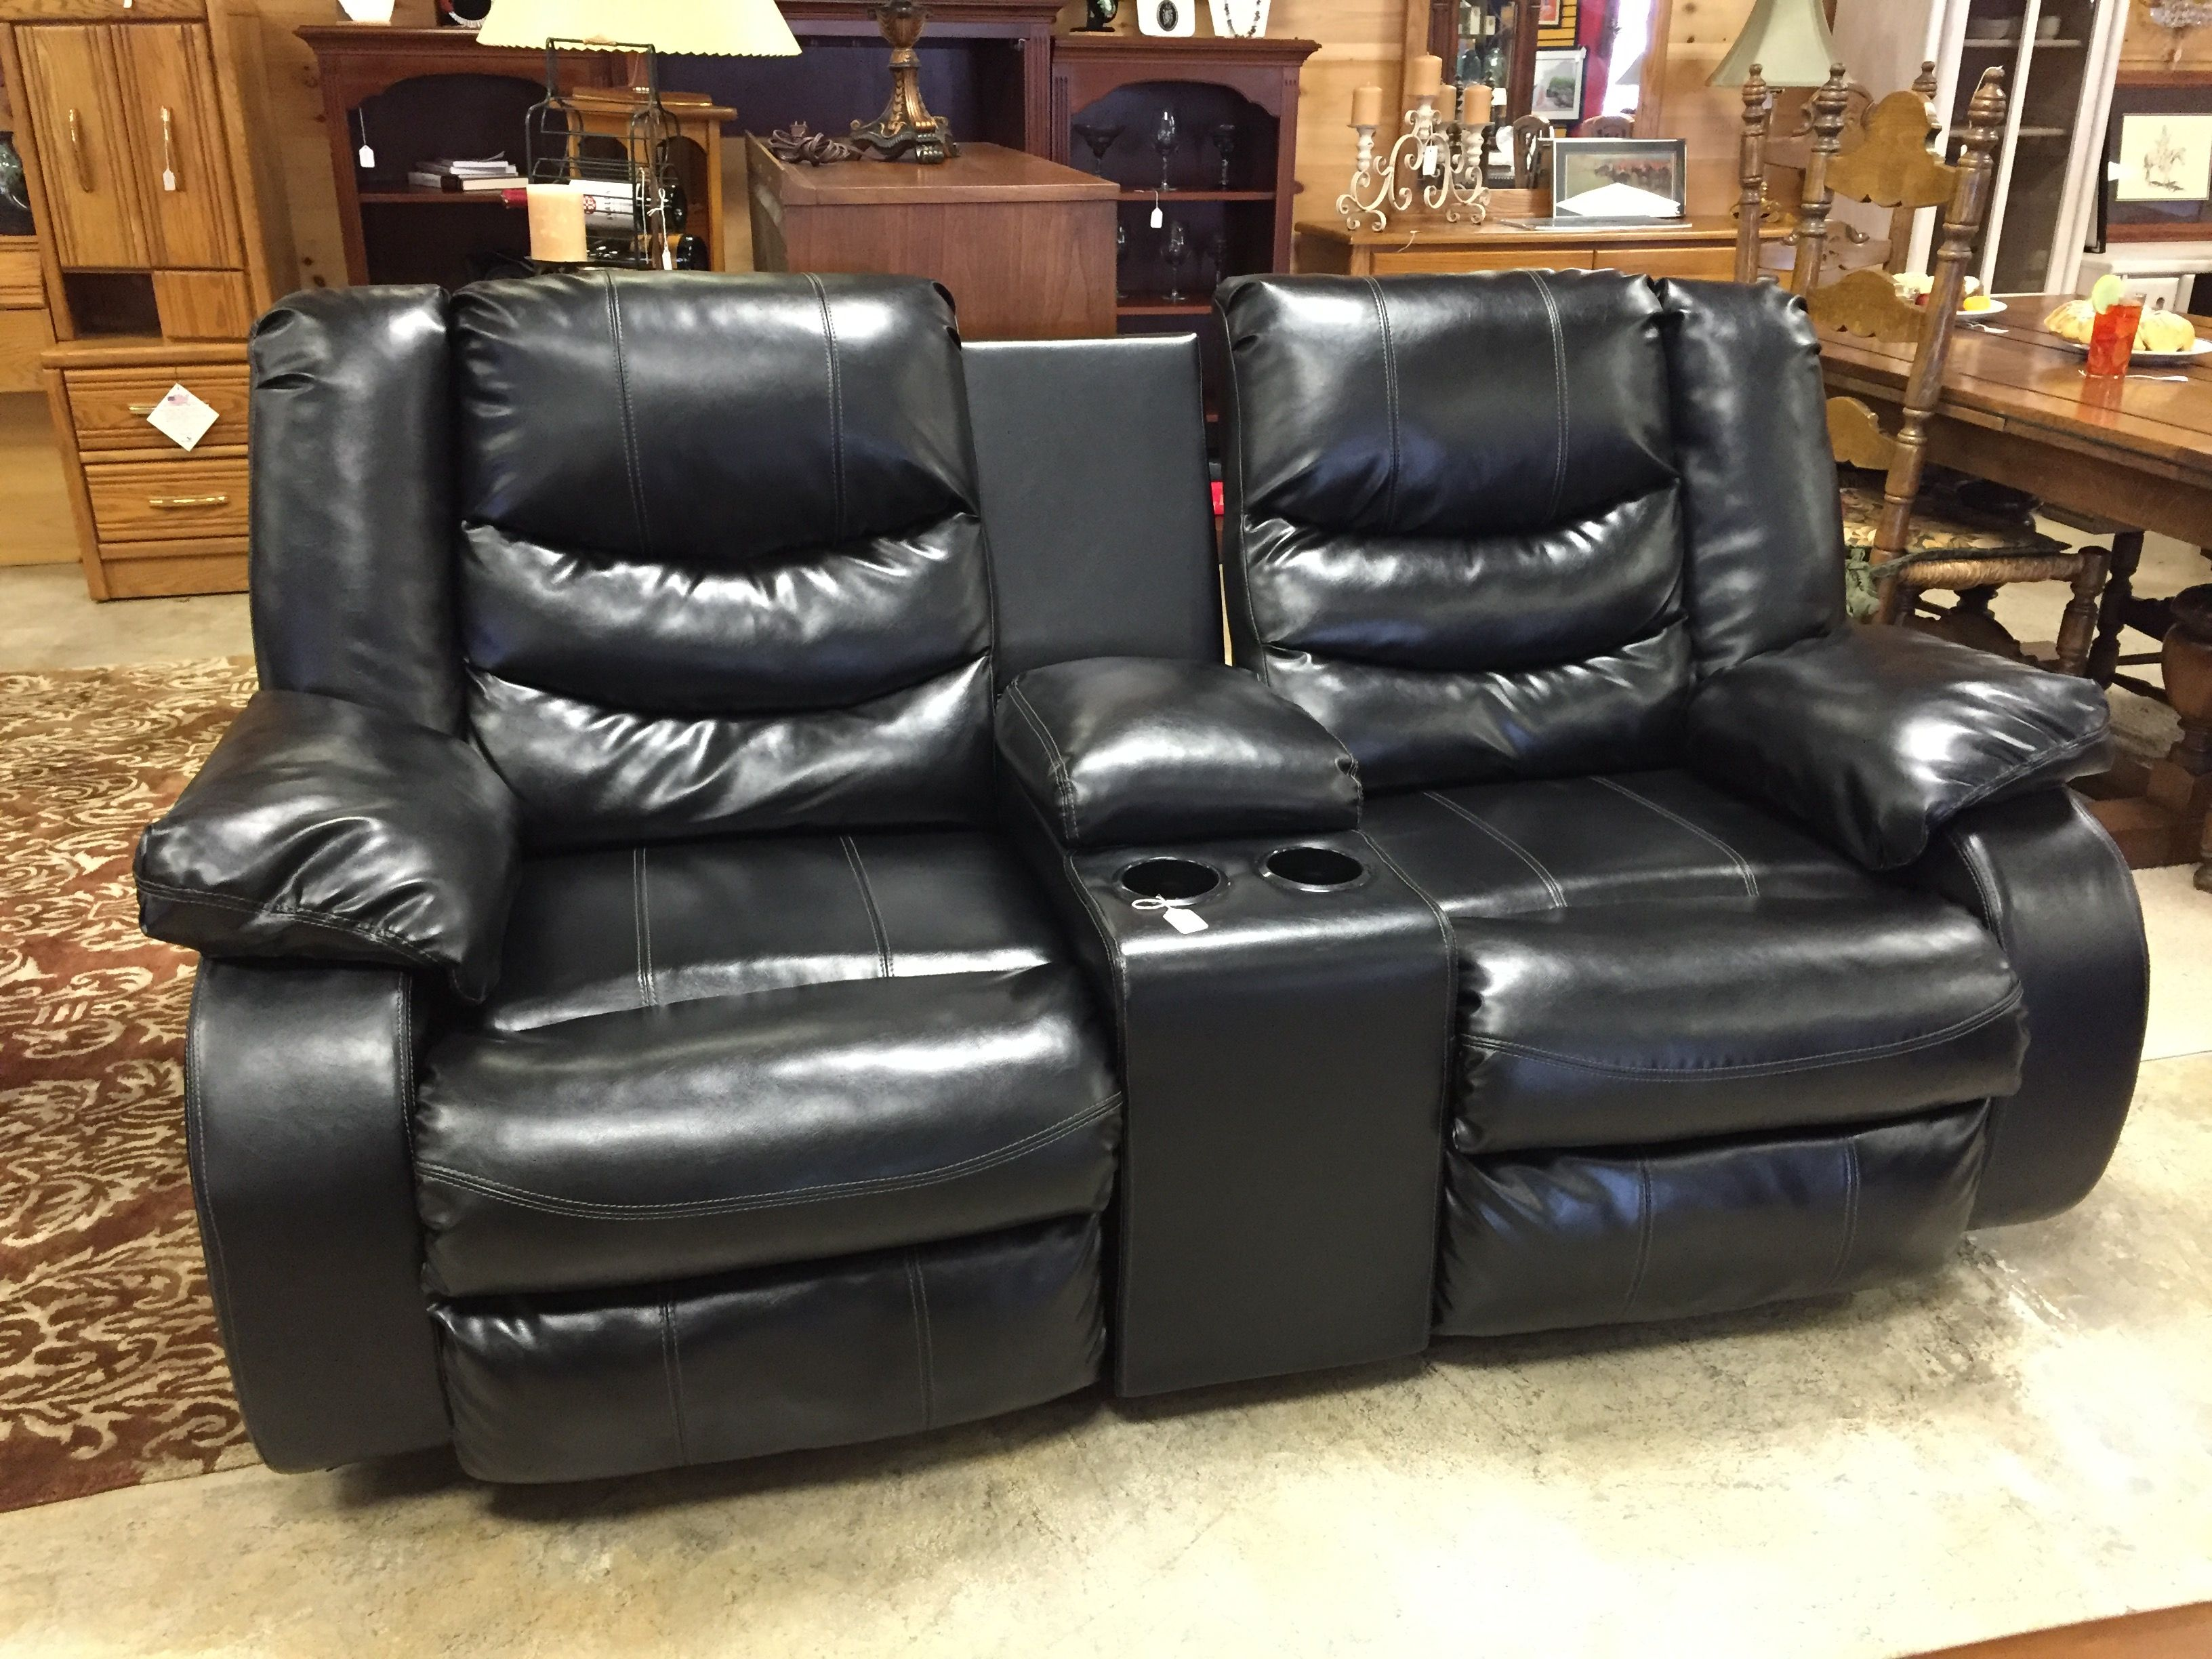 Dual Recliner Loveseat  $595 #loveseat #mk #consignment #furniture #comfort  #